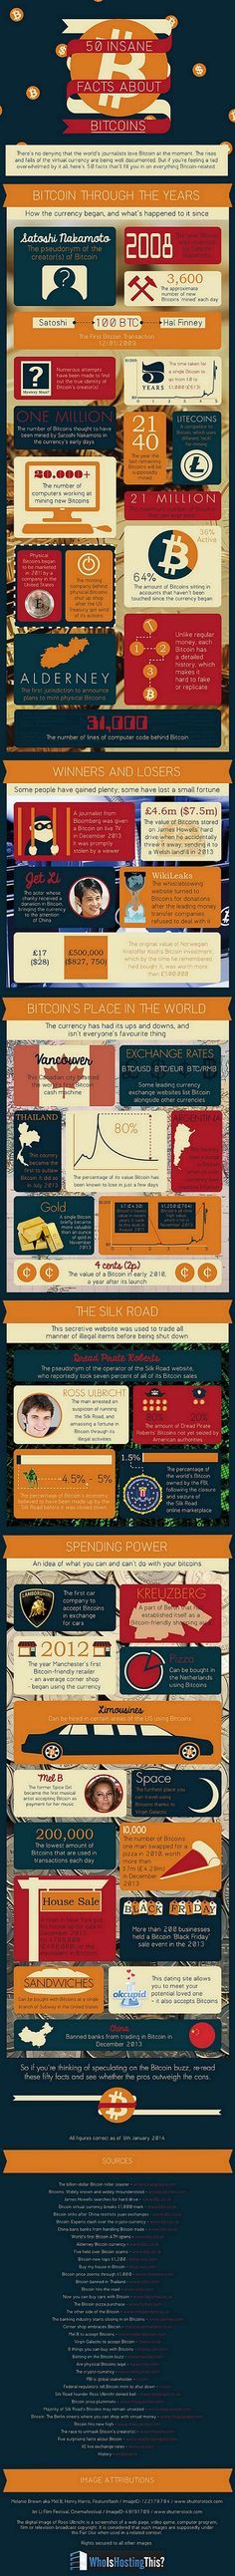 50 Insane Facts About #Bitcoin #Infographic